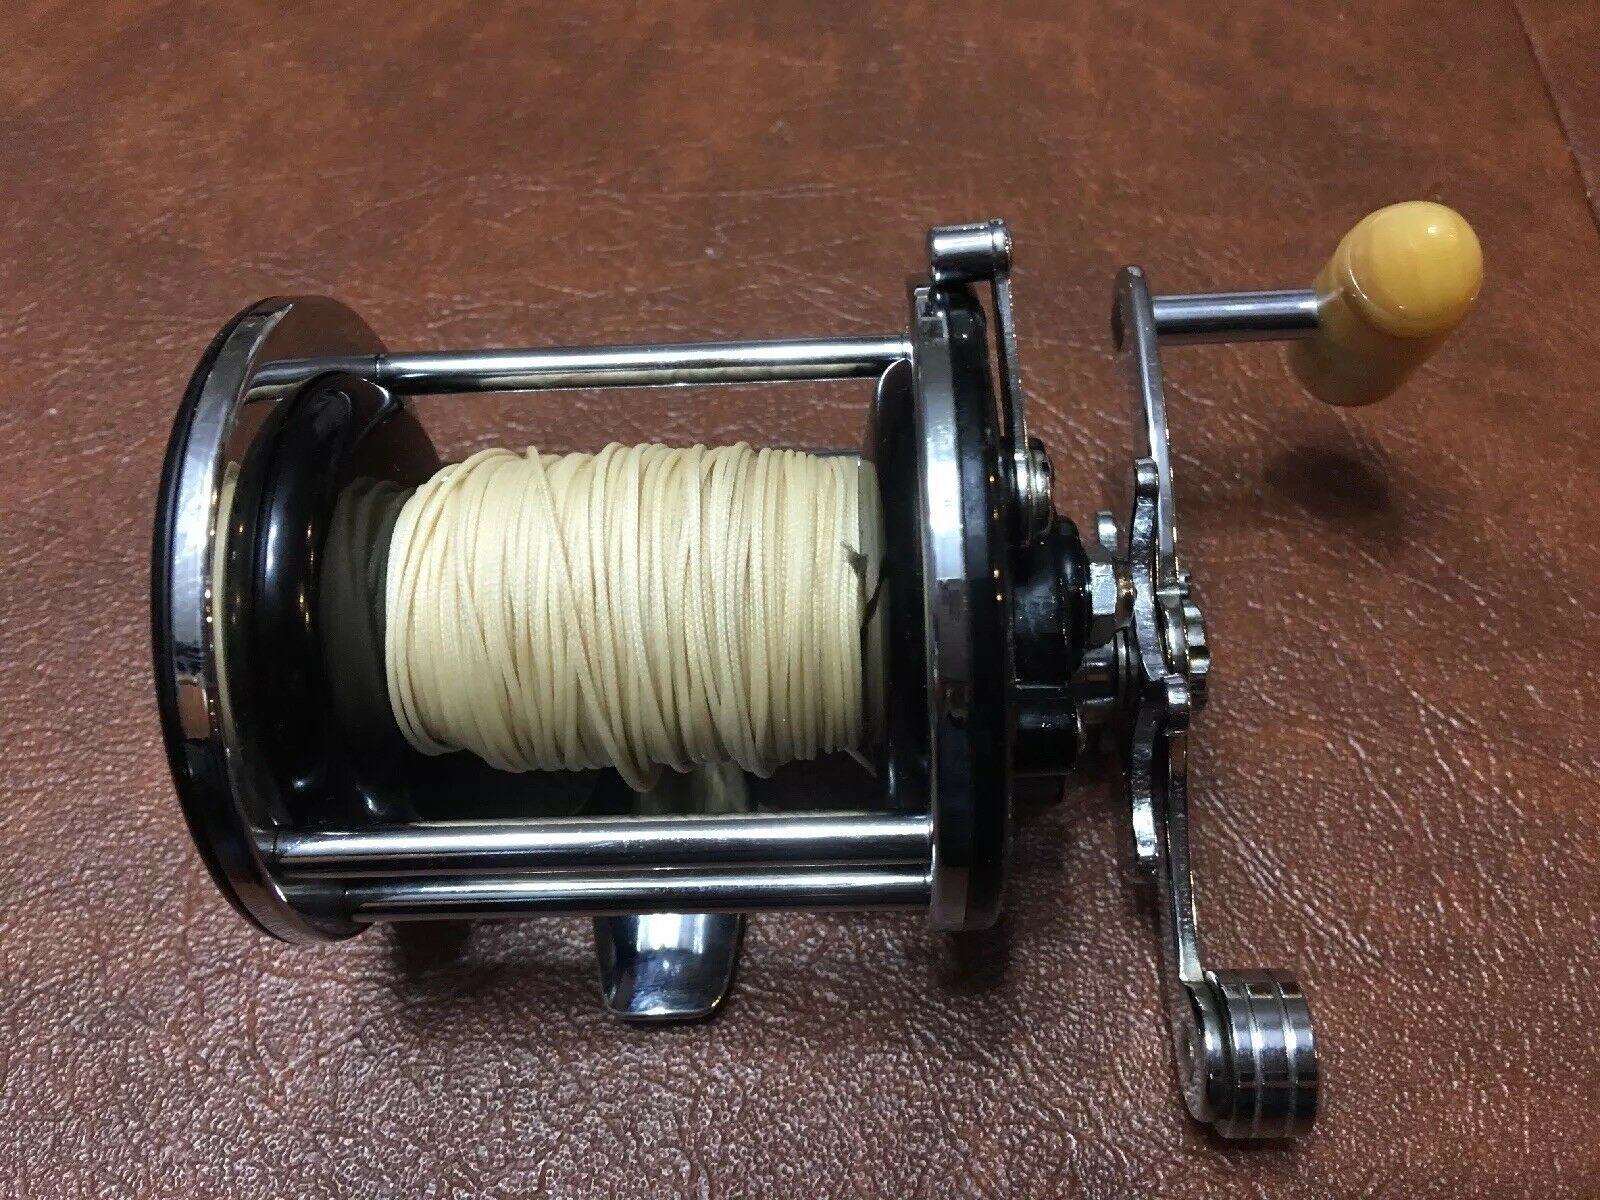 PENN 155 NO. 155 PENN  FISHING REEL, VERY SMOOTH, SALTWATER IN NEW CONDITION 78c3ac